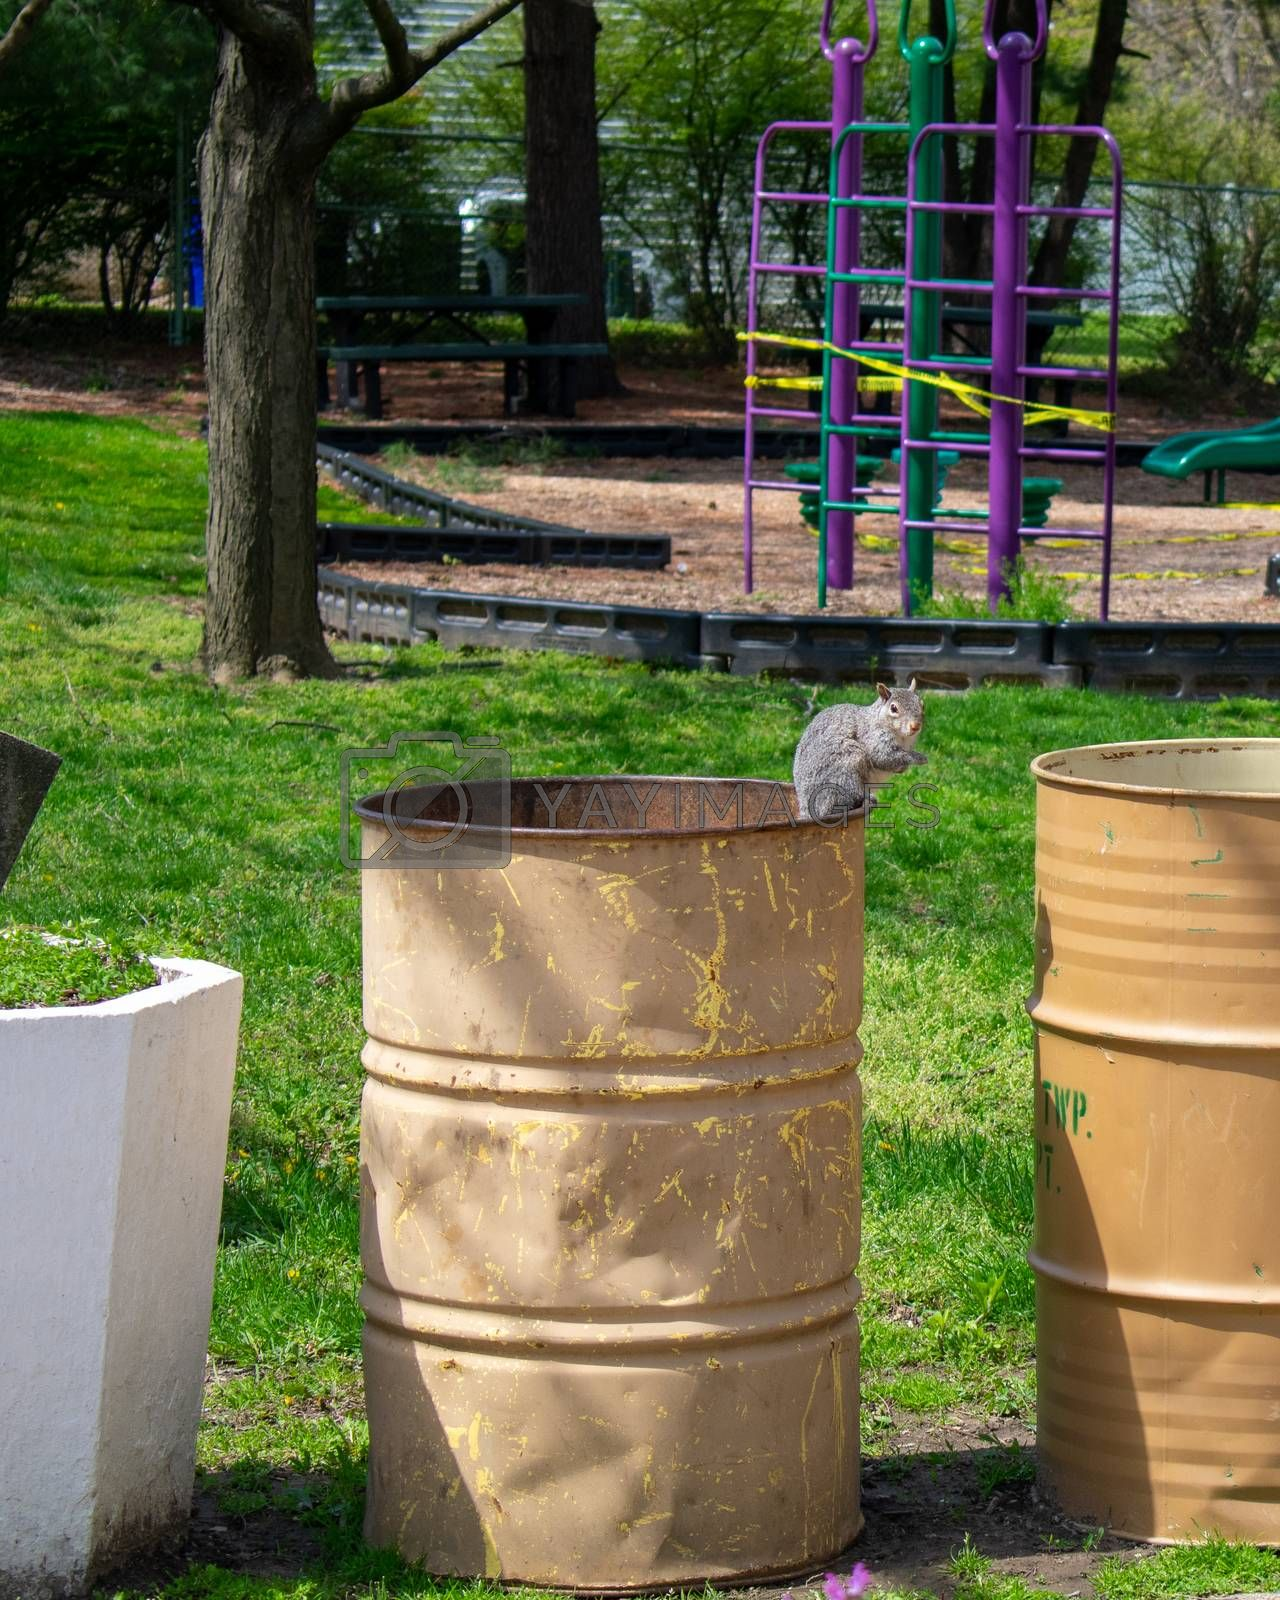 A Small Squirrel Sitting on a Metal Trash Can at a Park